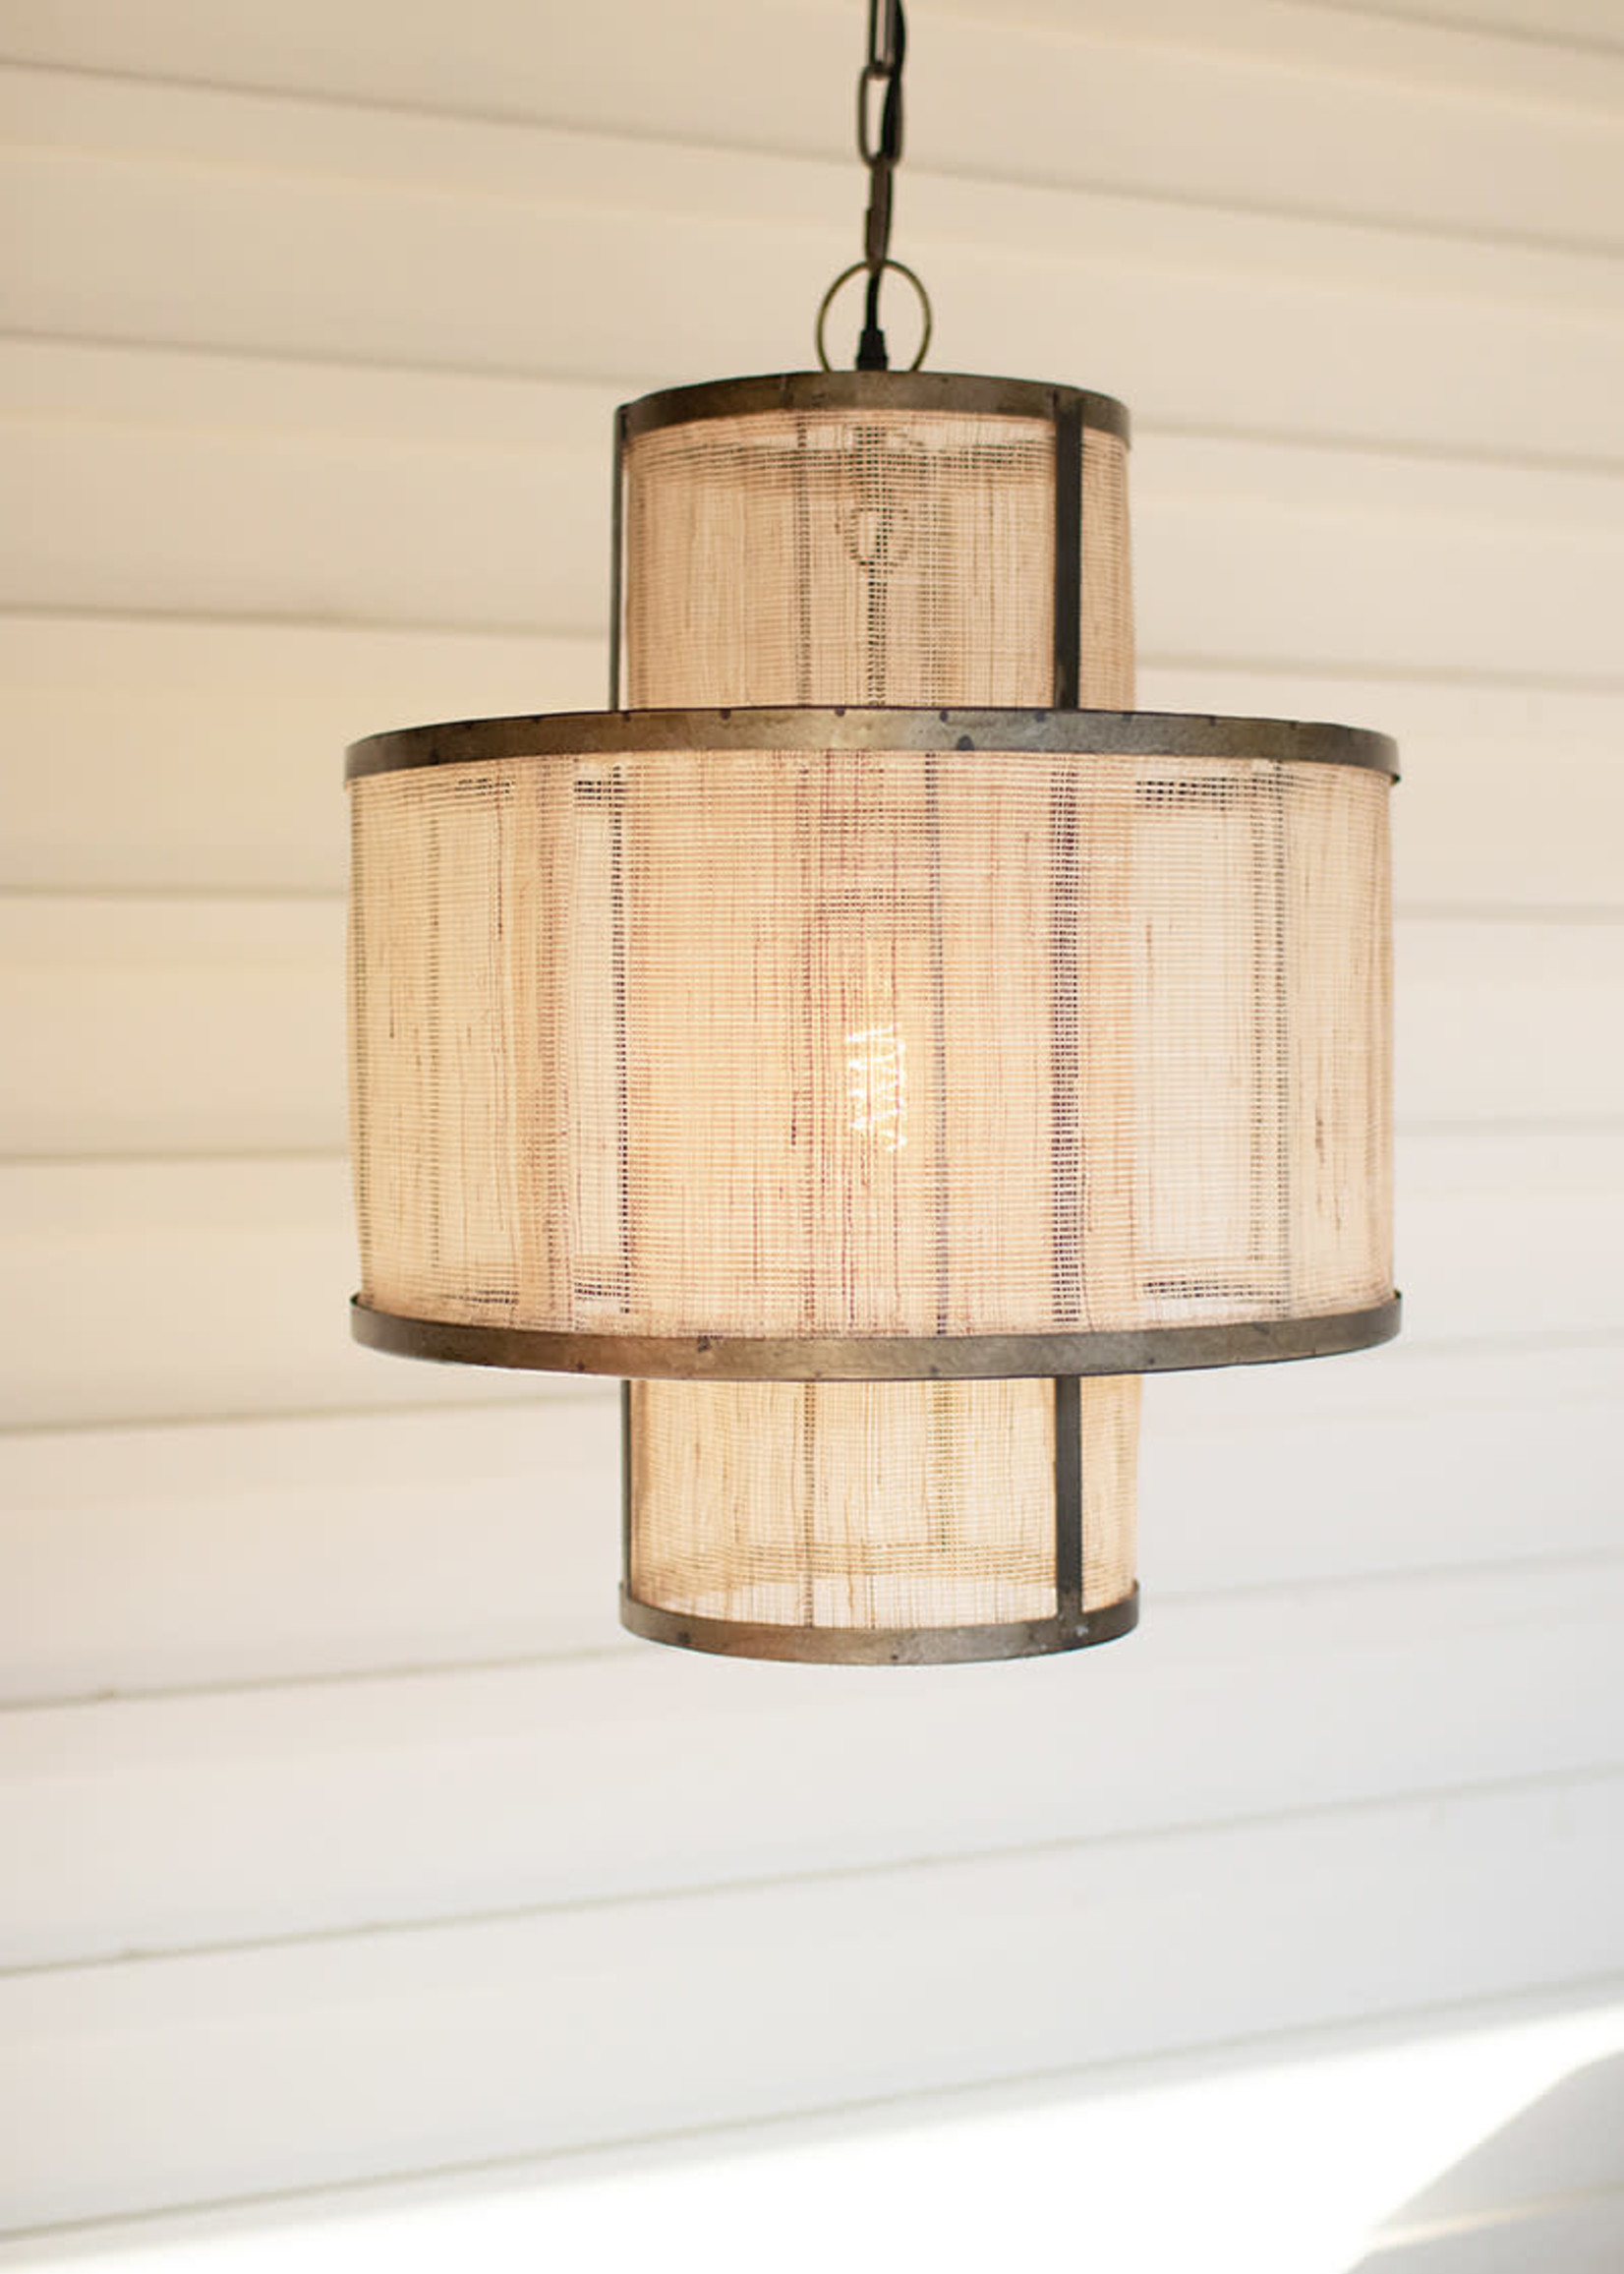 Round Double Layered Woven Fiber and Metal Pendant Light